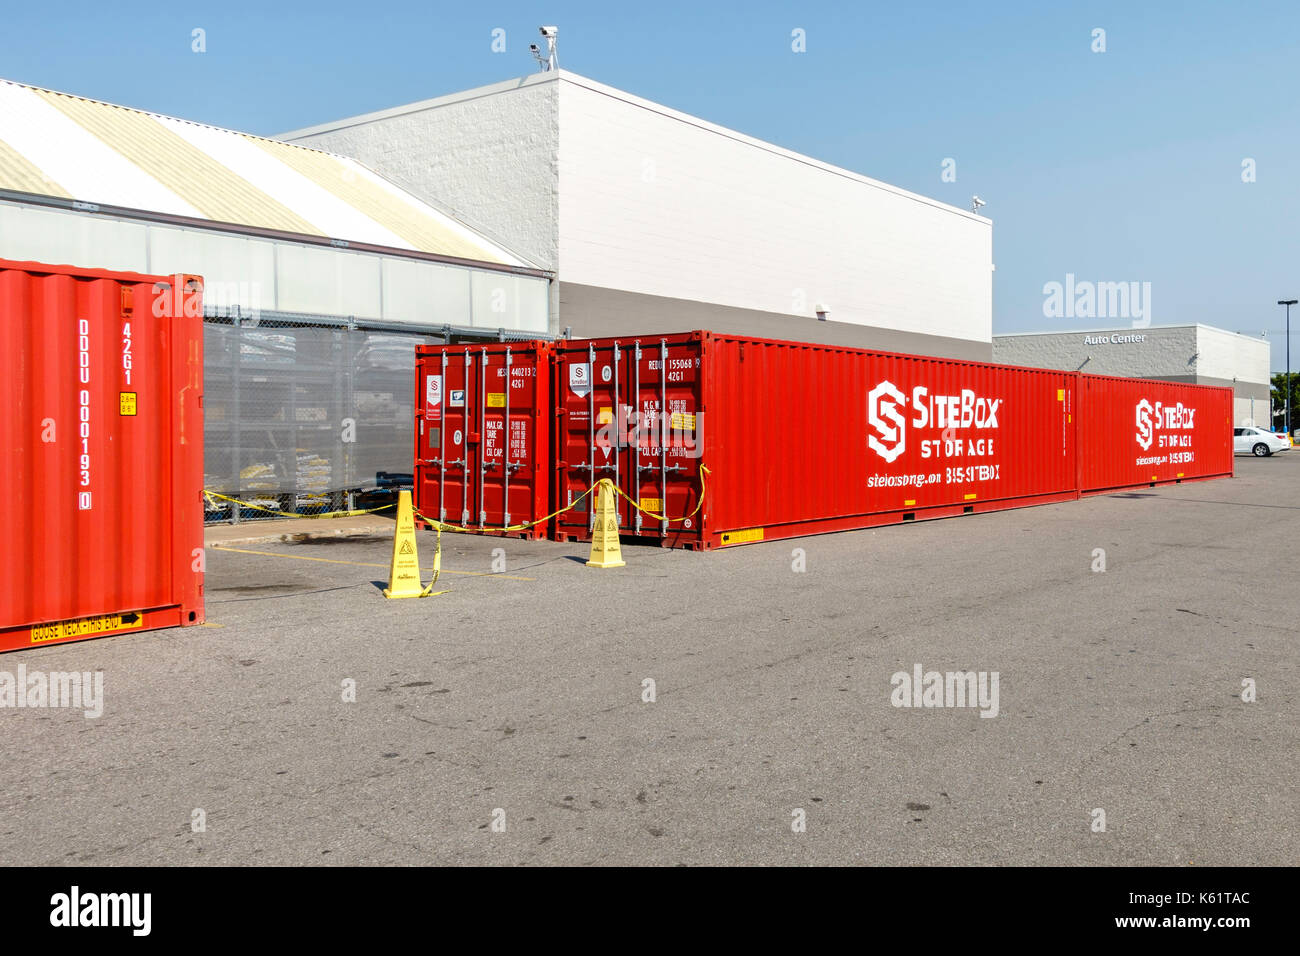 Red ed metal portable SiteBox storage containers in a Walmart